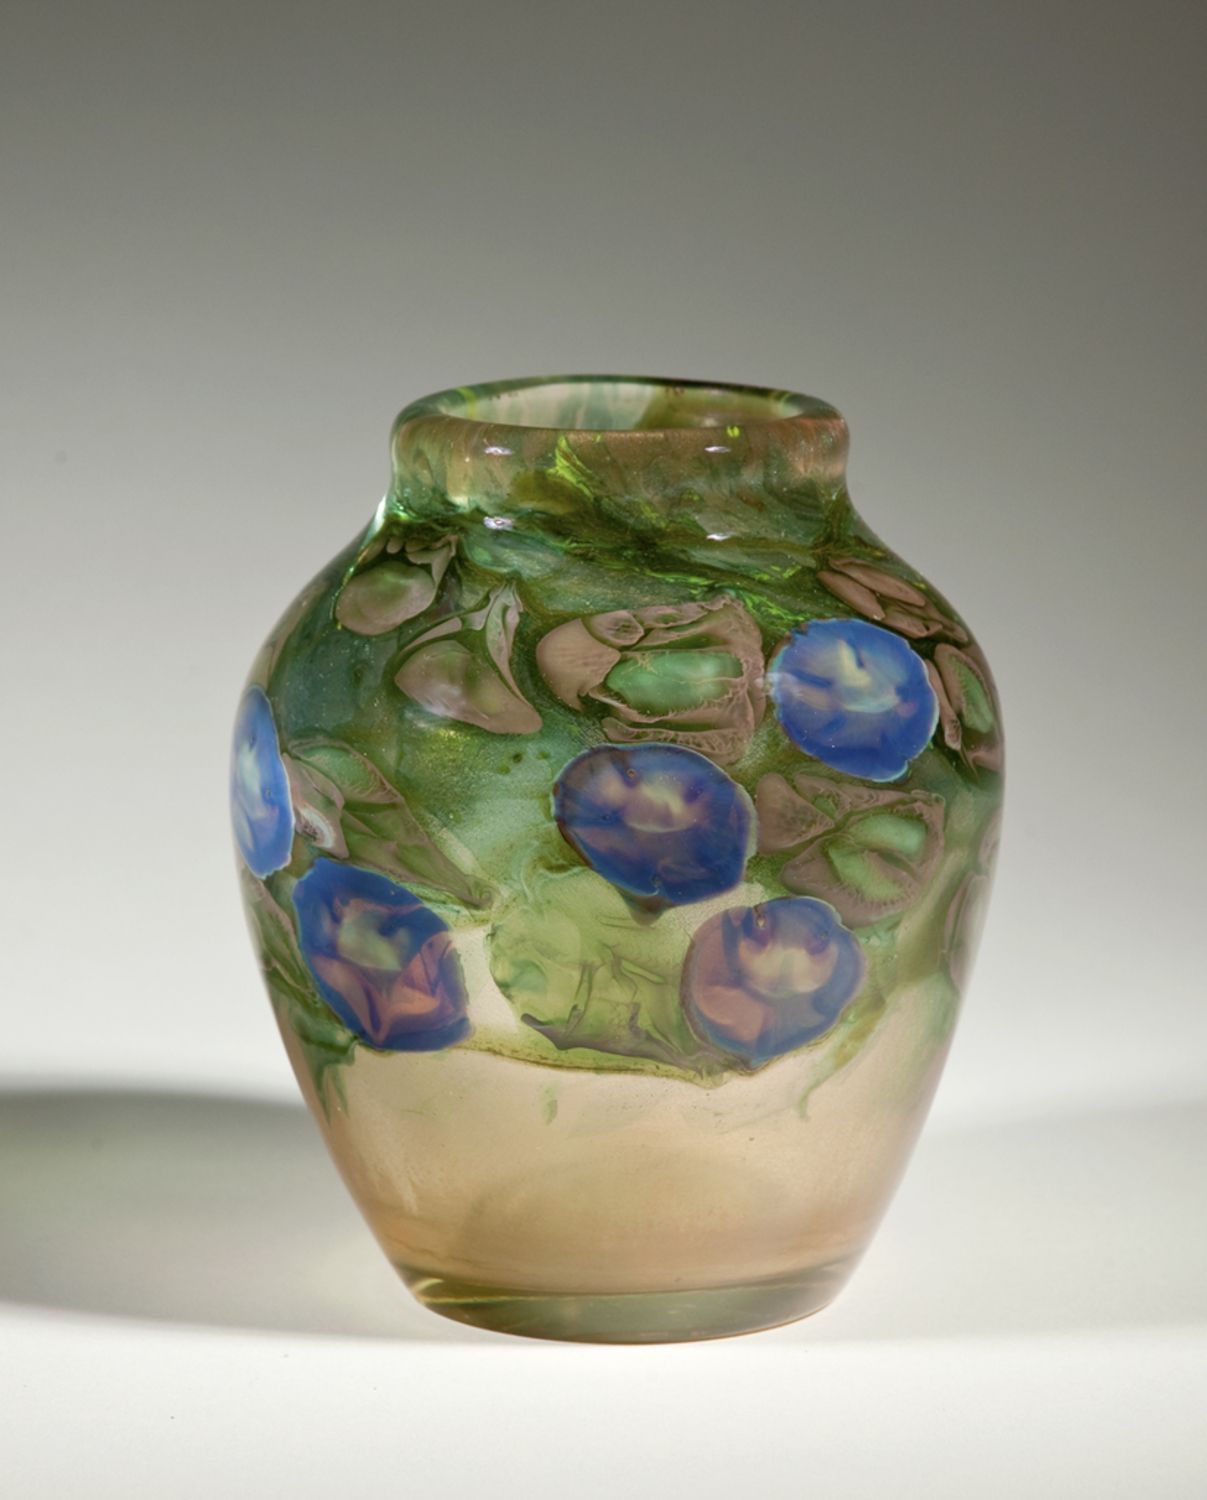 tiffany favrile vase value of new tiffany art glass exhibit to open at morse museum art news inside new tiffany art glass exhibit to open at morse museum